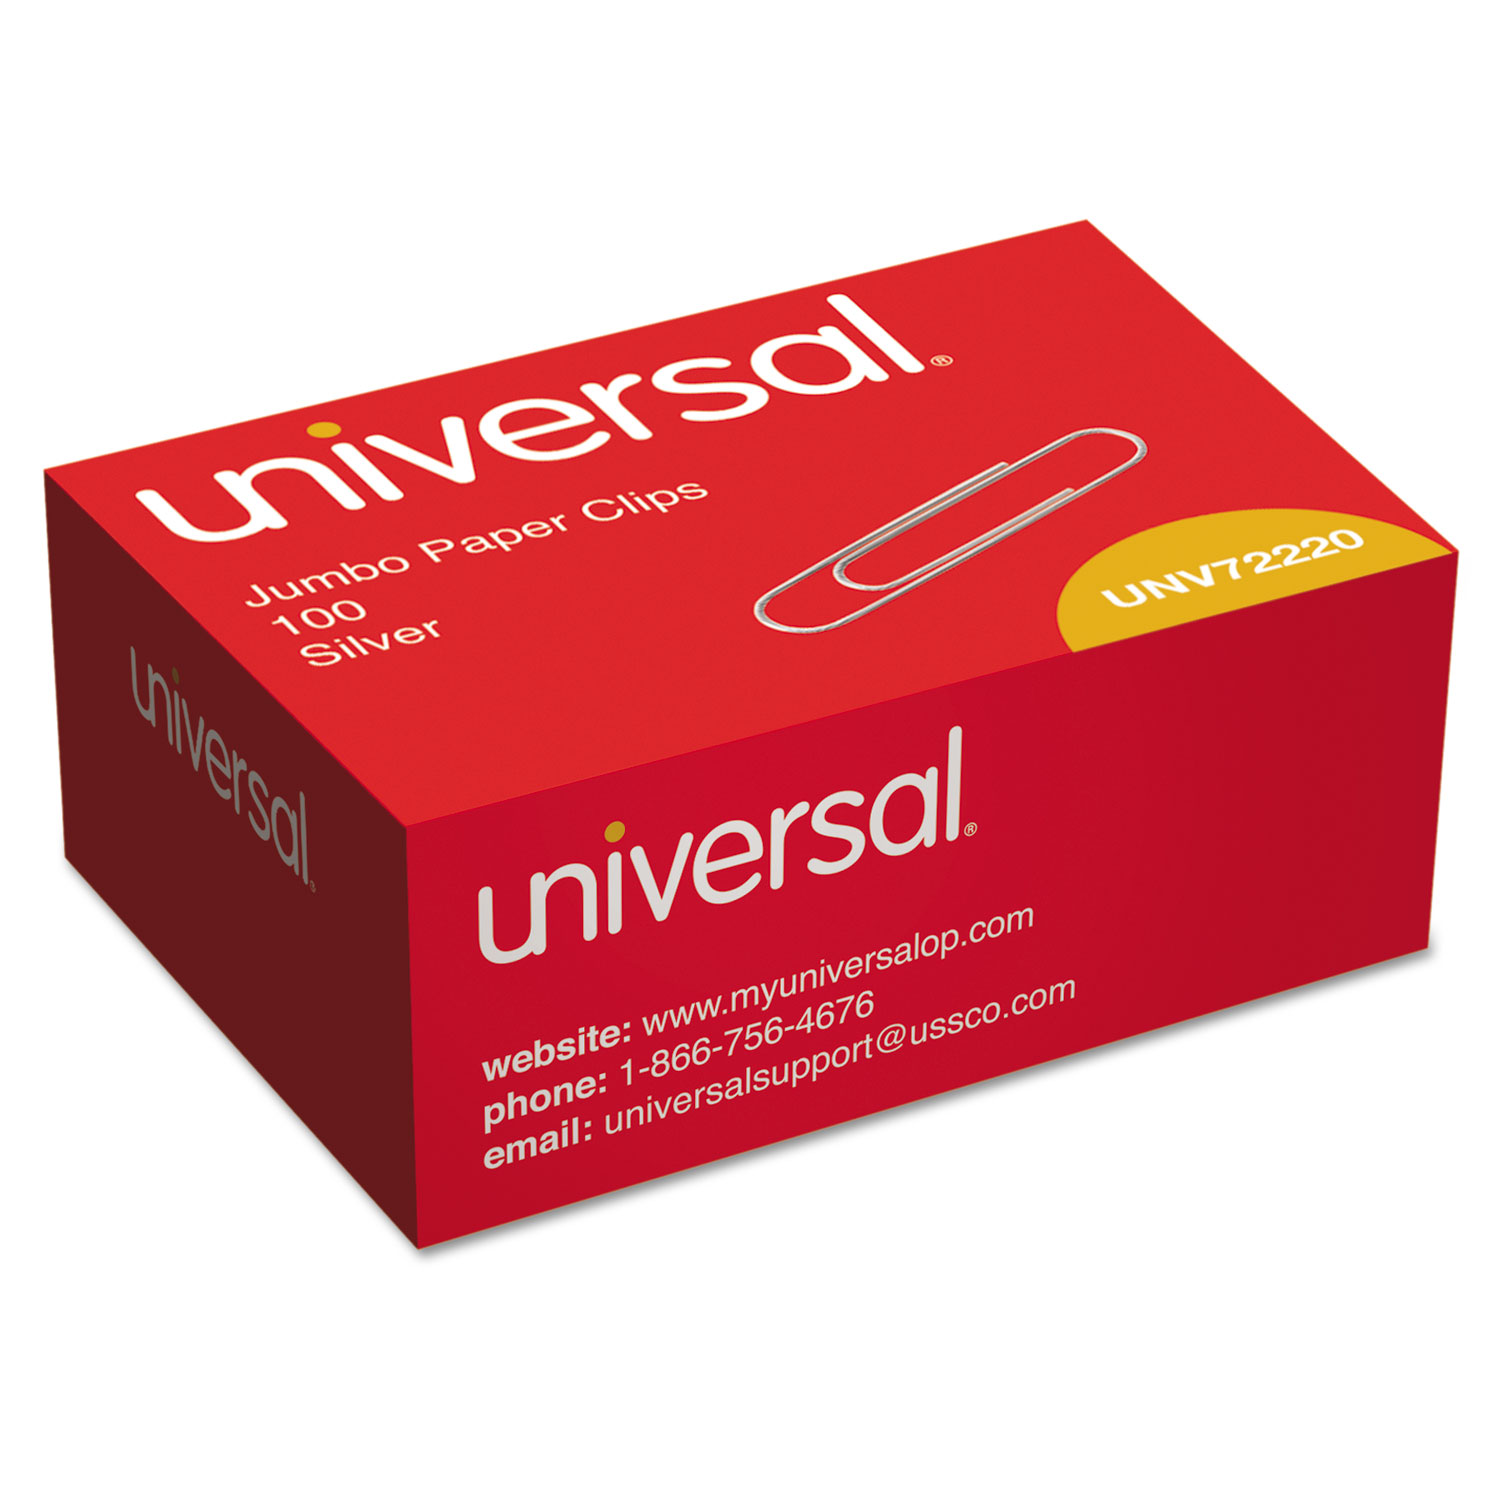 smooth paper clips by universal® unv72220 | ontimesupplies